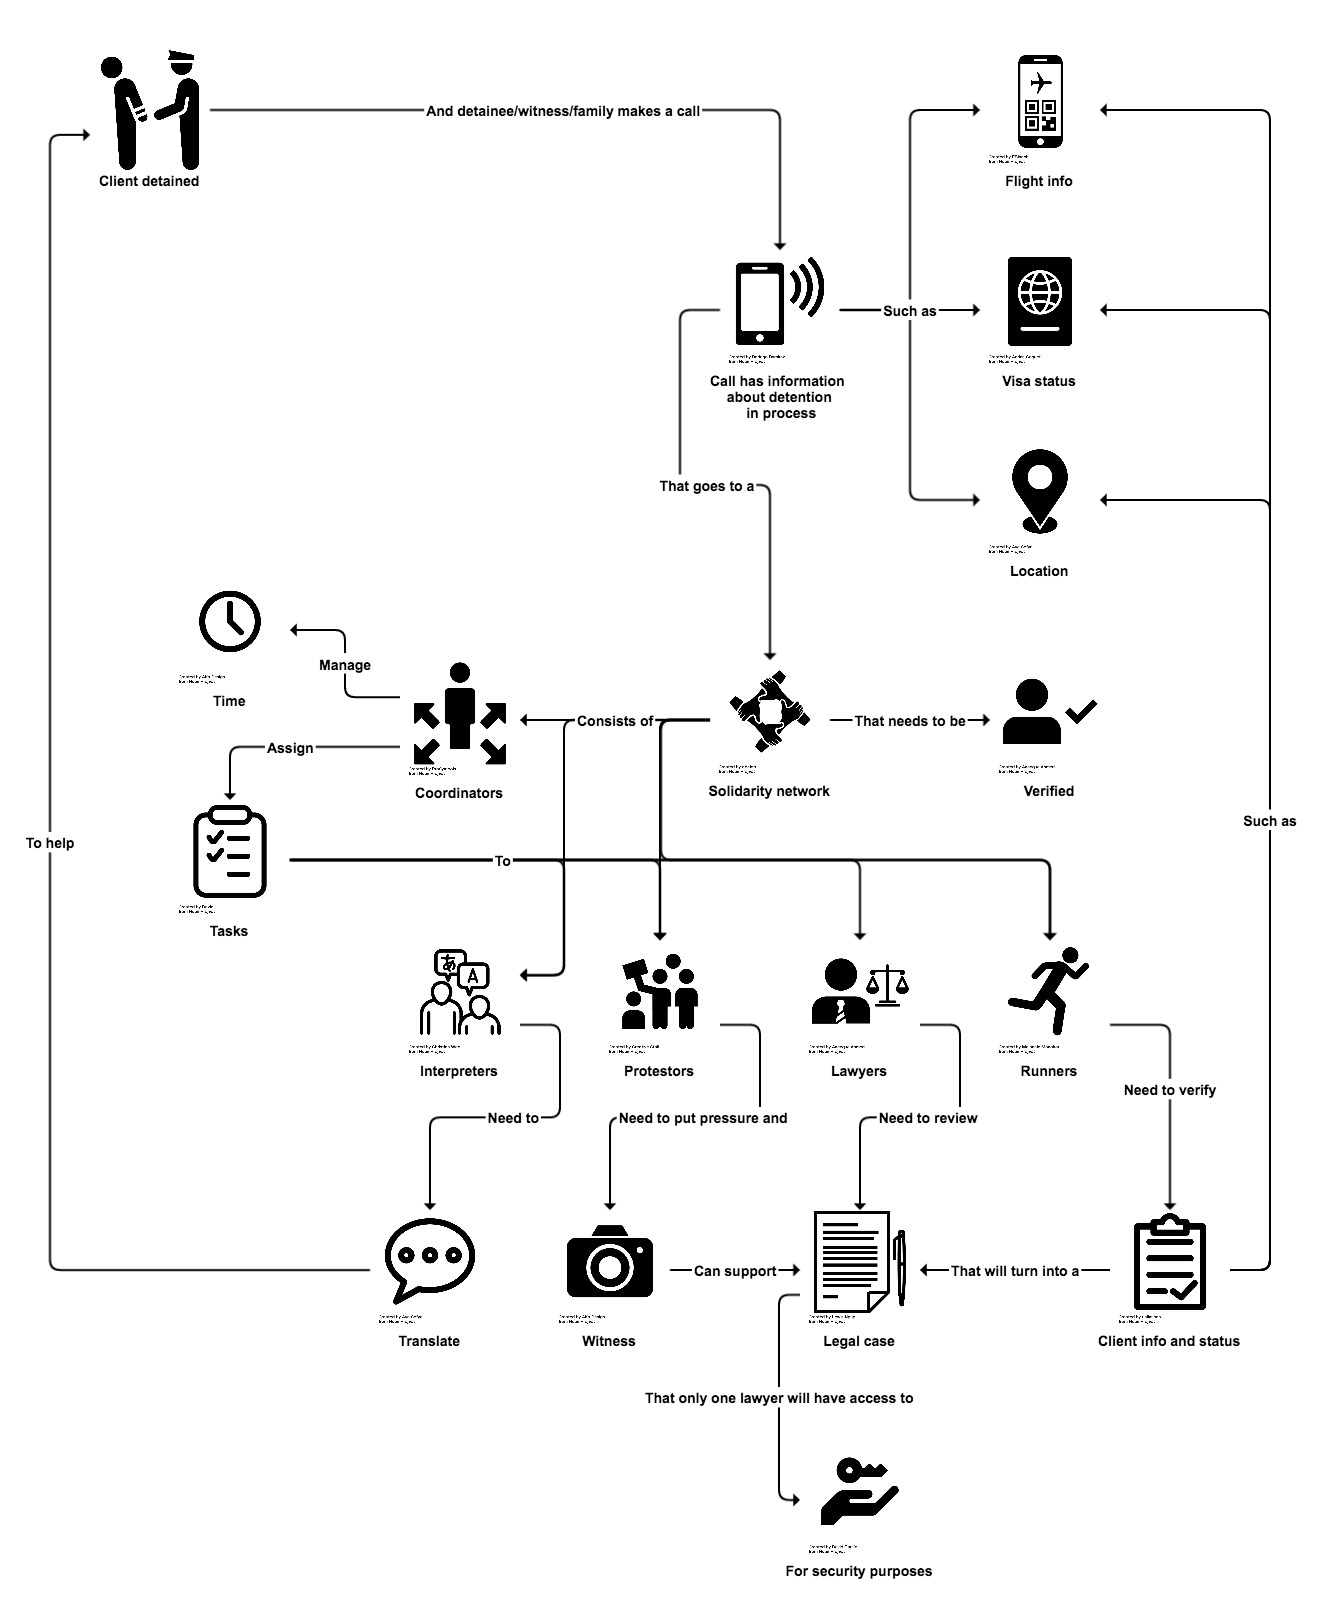 Rapid response alert system i created a user flow diagram to describe how people helped detainees travelling into jfk airport pooptronica Gallery